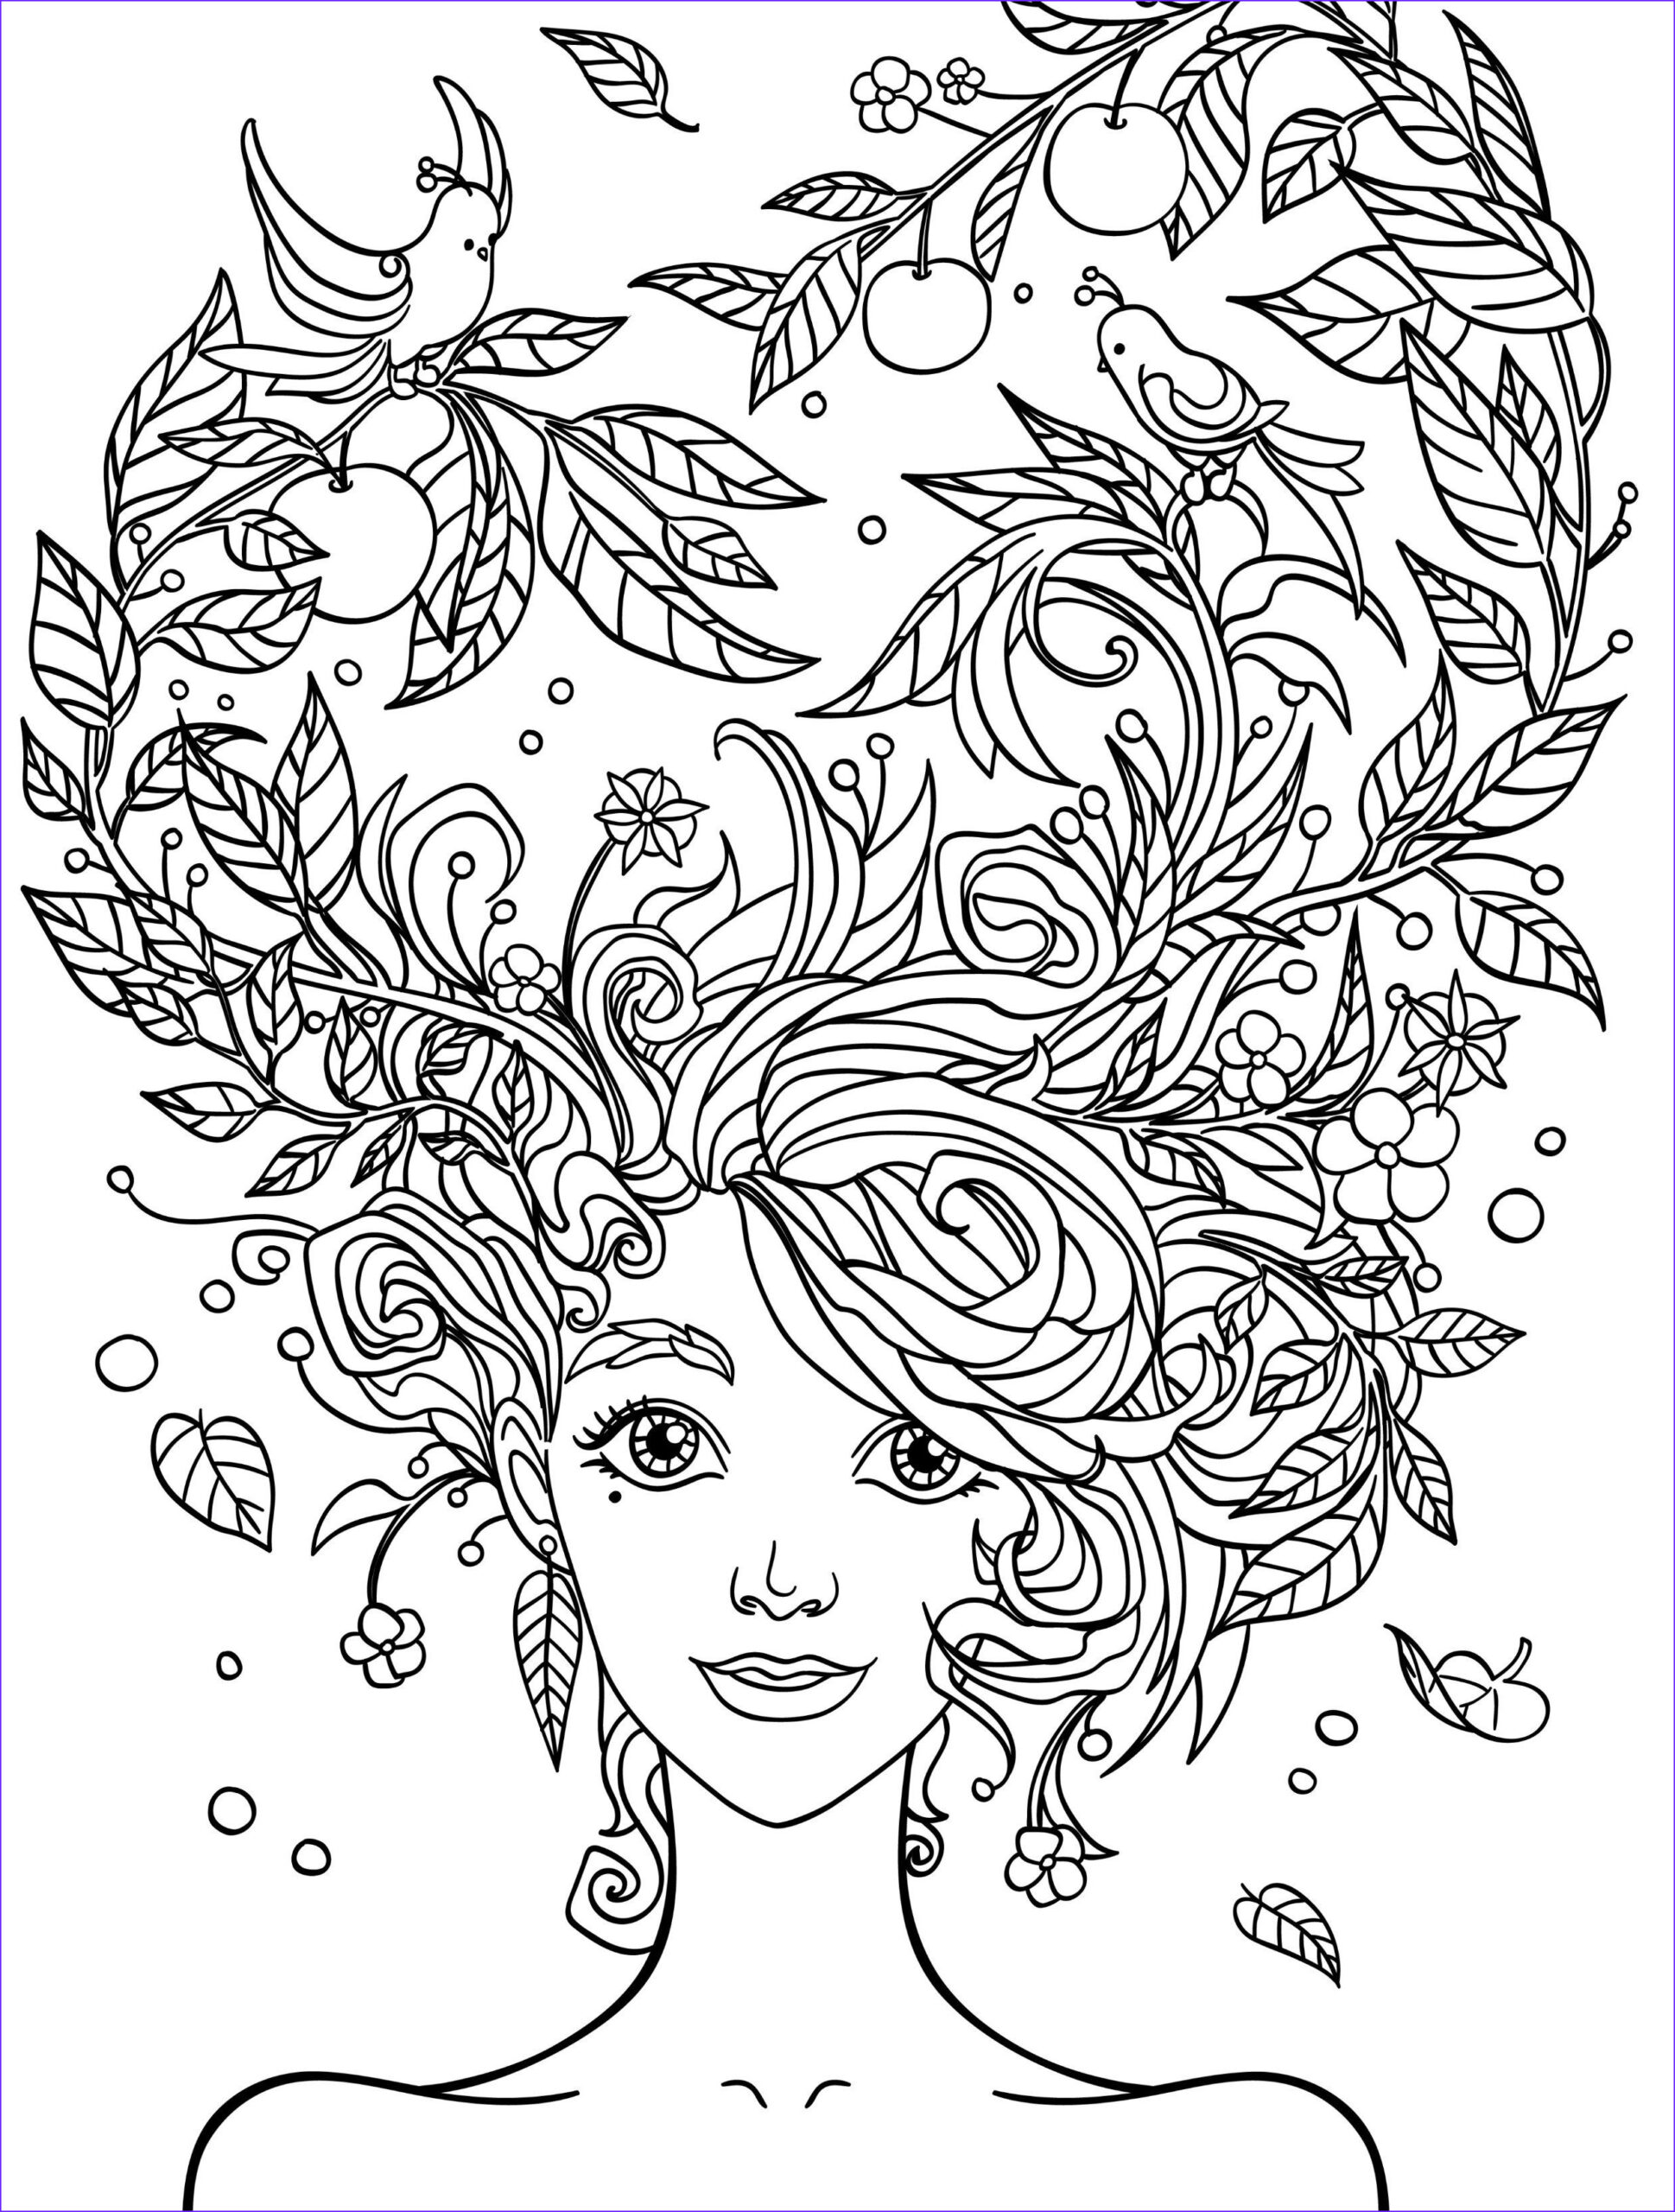 Large Print Adult Coloring Books Luxury Stock Pretty Coloring Pages for Adults Free Printable